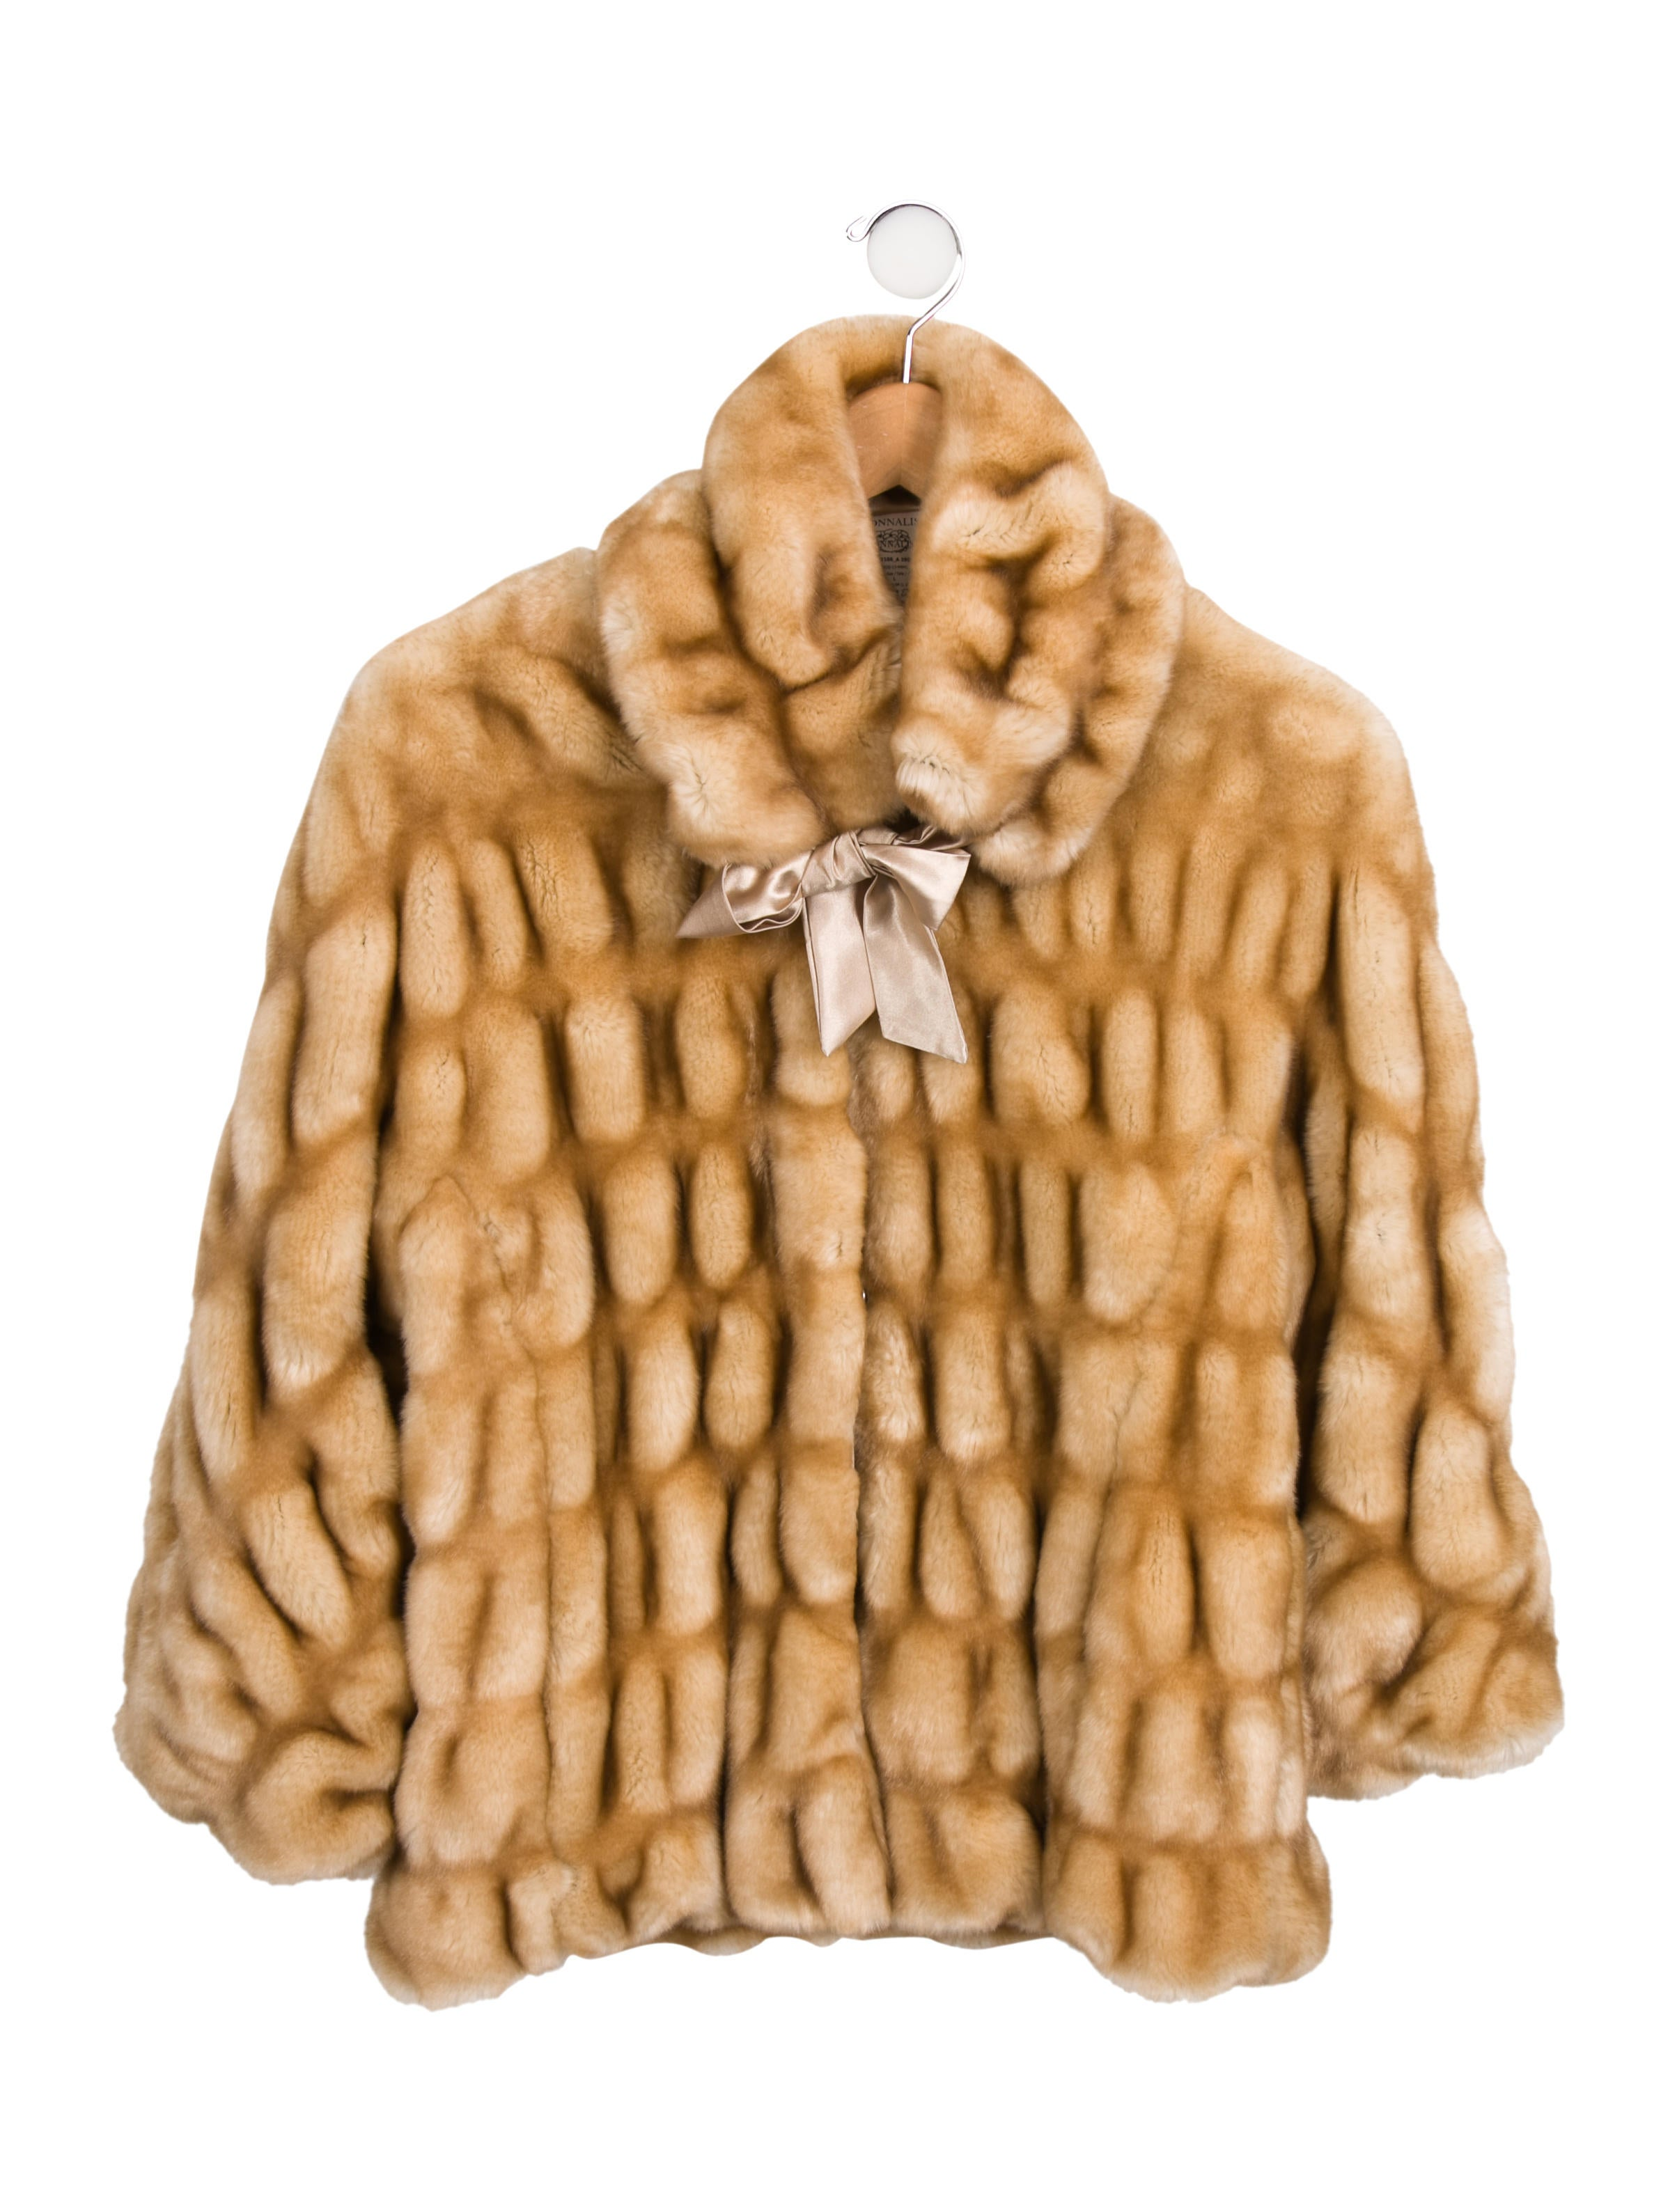 4941a6ab54a2 Monnalisa Chic Monnalisa Girls  Faux Fur Coat - Girls - WMNLC20009 ...